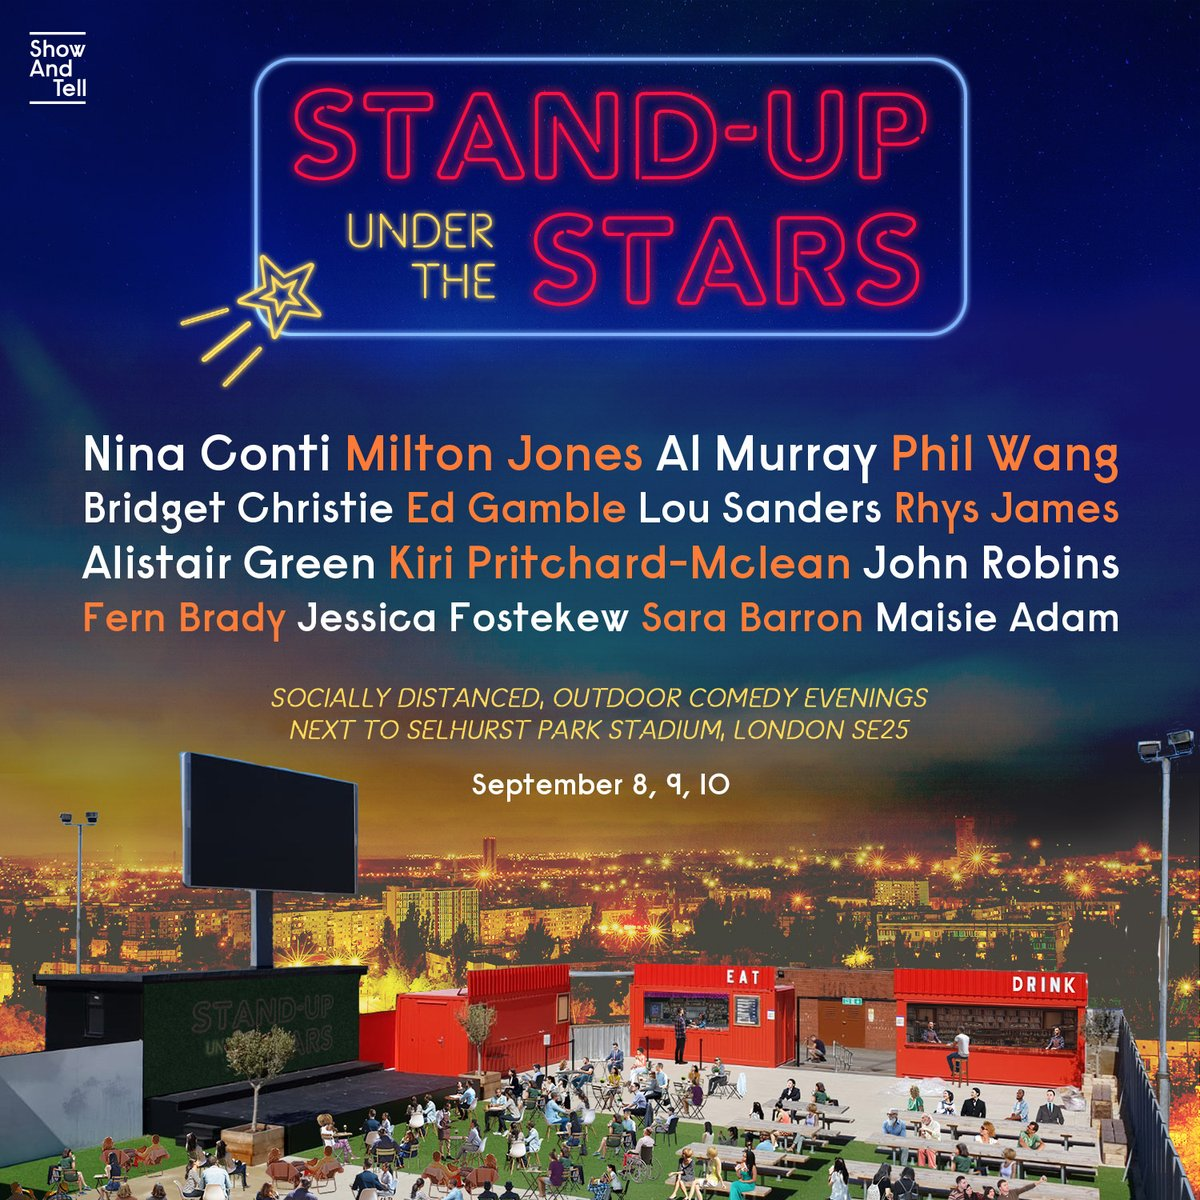 Were building a distanced, outdoor, comedy arena next to Selhurst Park and filling it with: @ninaconti, @almurray, @EdGambleComedy, @PhilNWang, @mralistairgreen, @themiltonjones, @LouSanders & more! Plus! £1 from every ticket goes to @angelcomedy 💜 showandtelluk.com/events/tags/st…